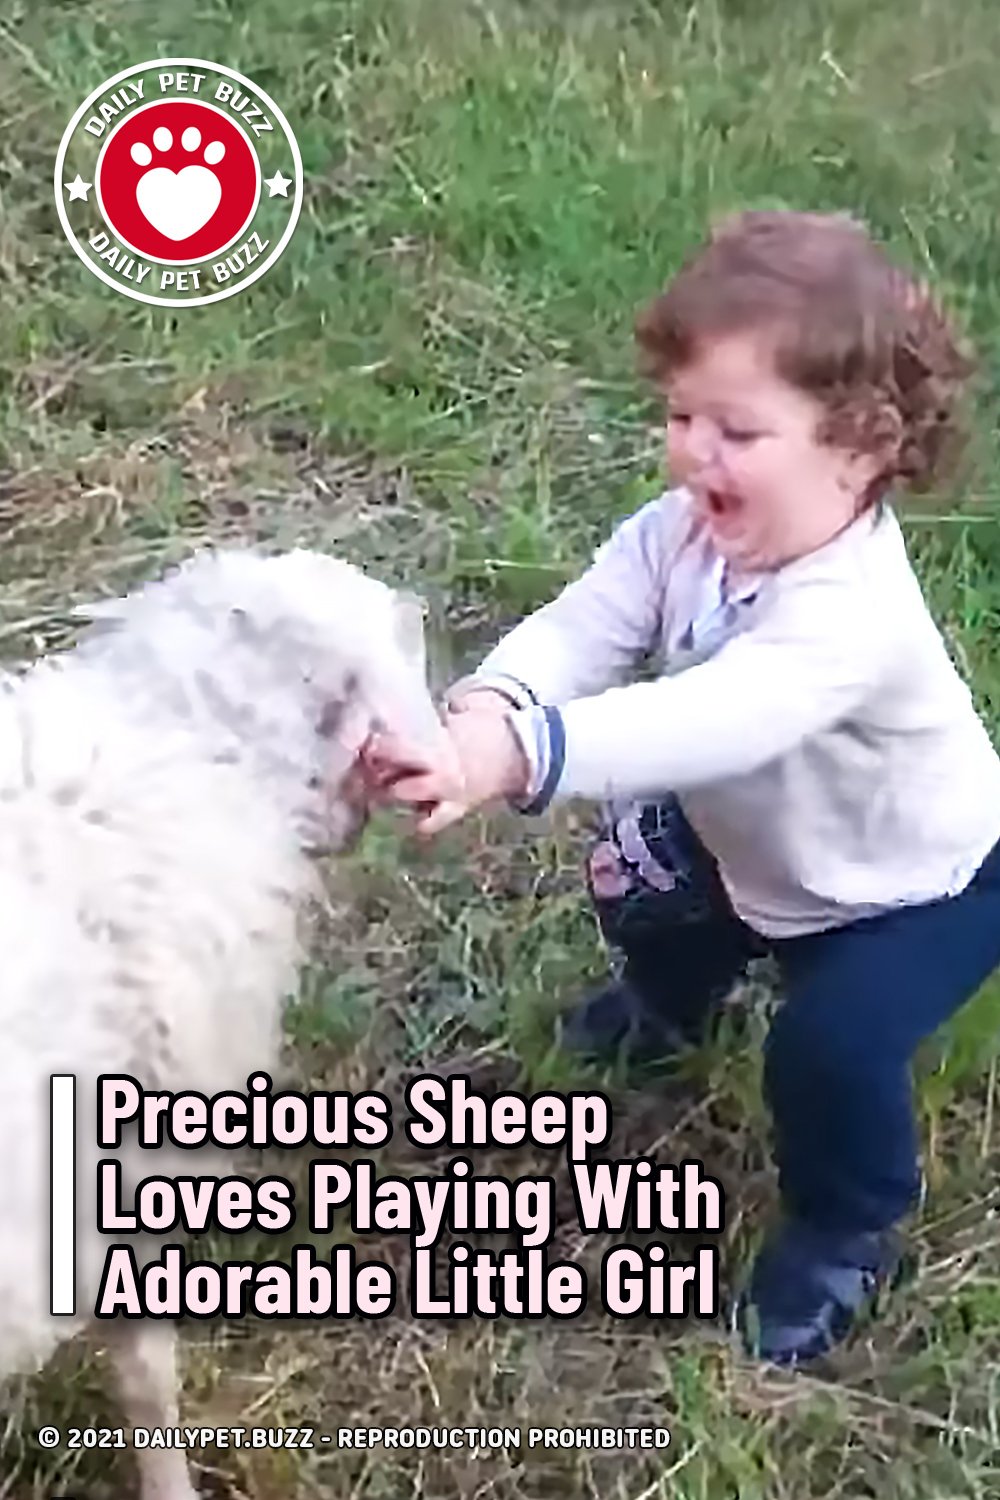 Precious Sheep Loves Playing With Adorable Little Girl